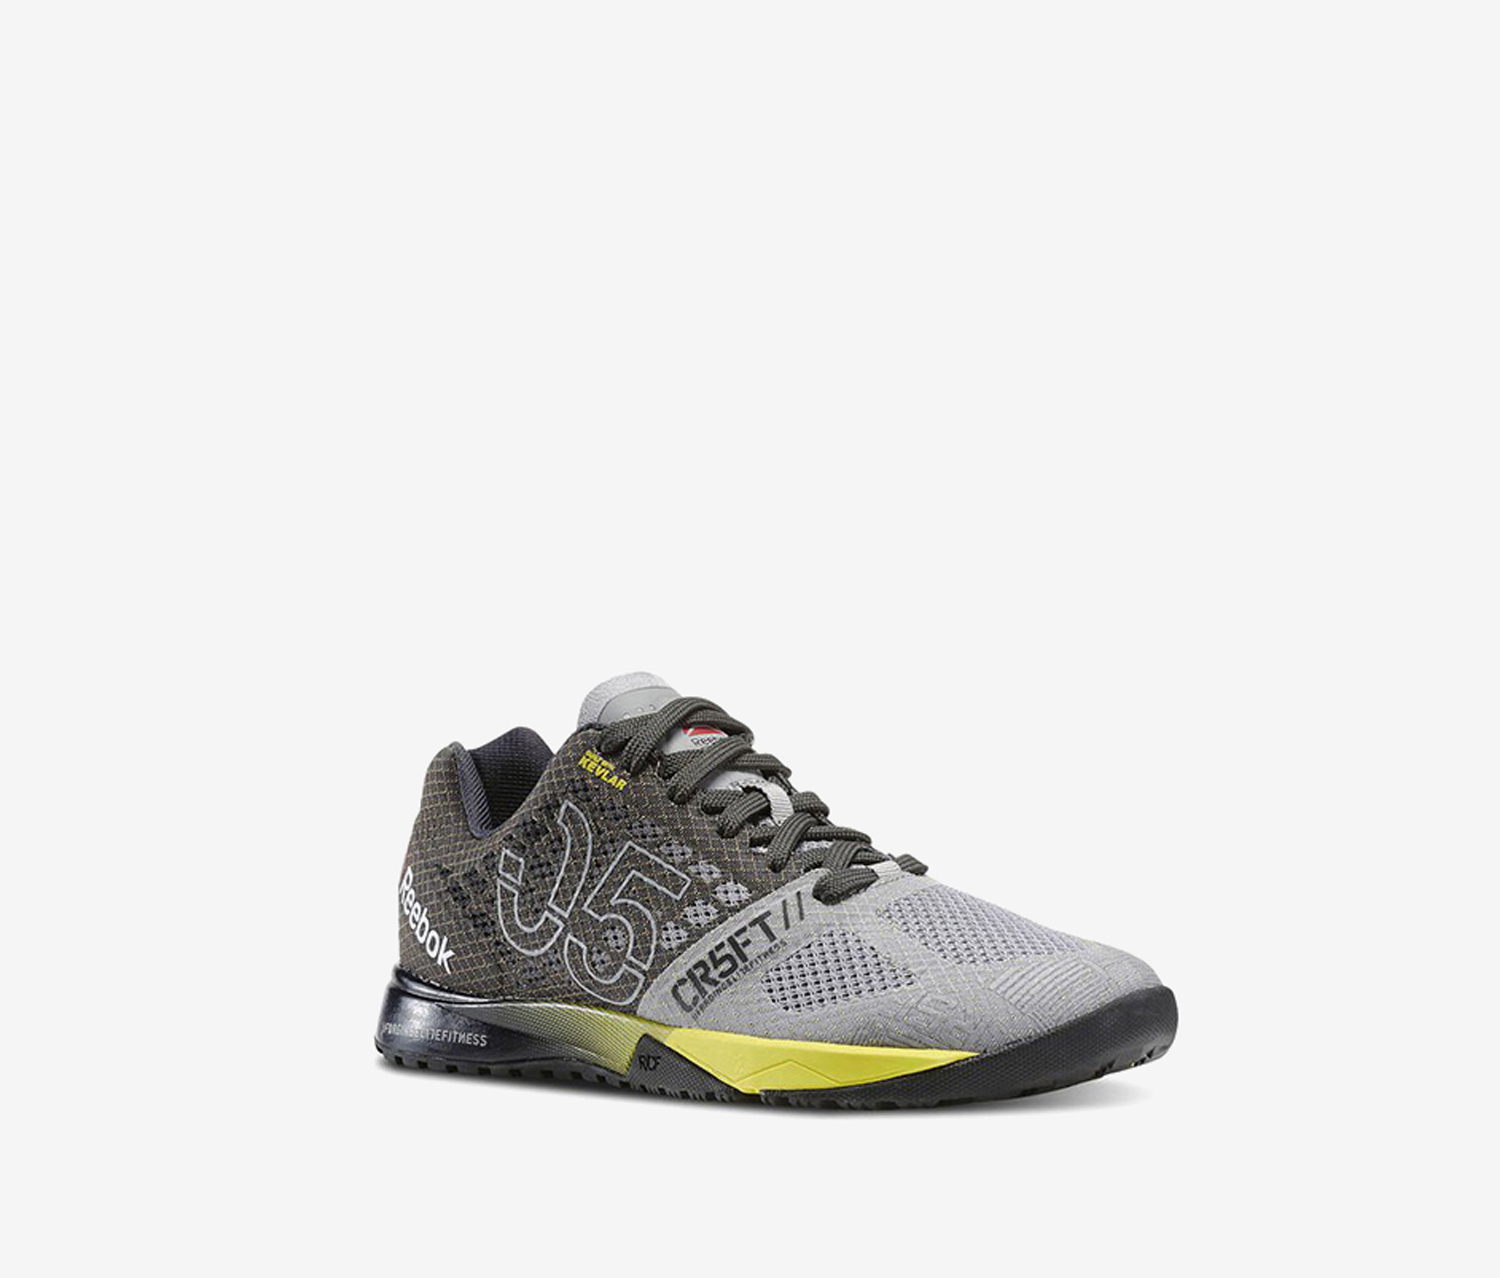 Reebok Women's Training Shoes, Grey